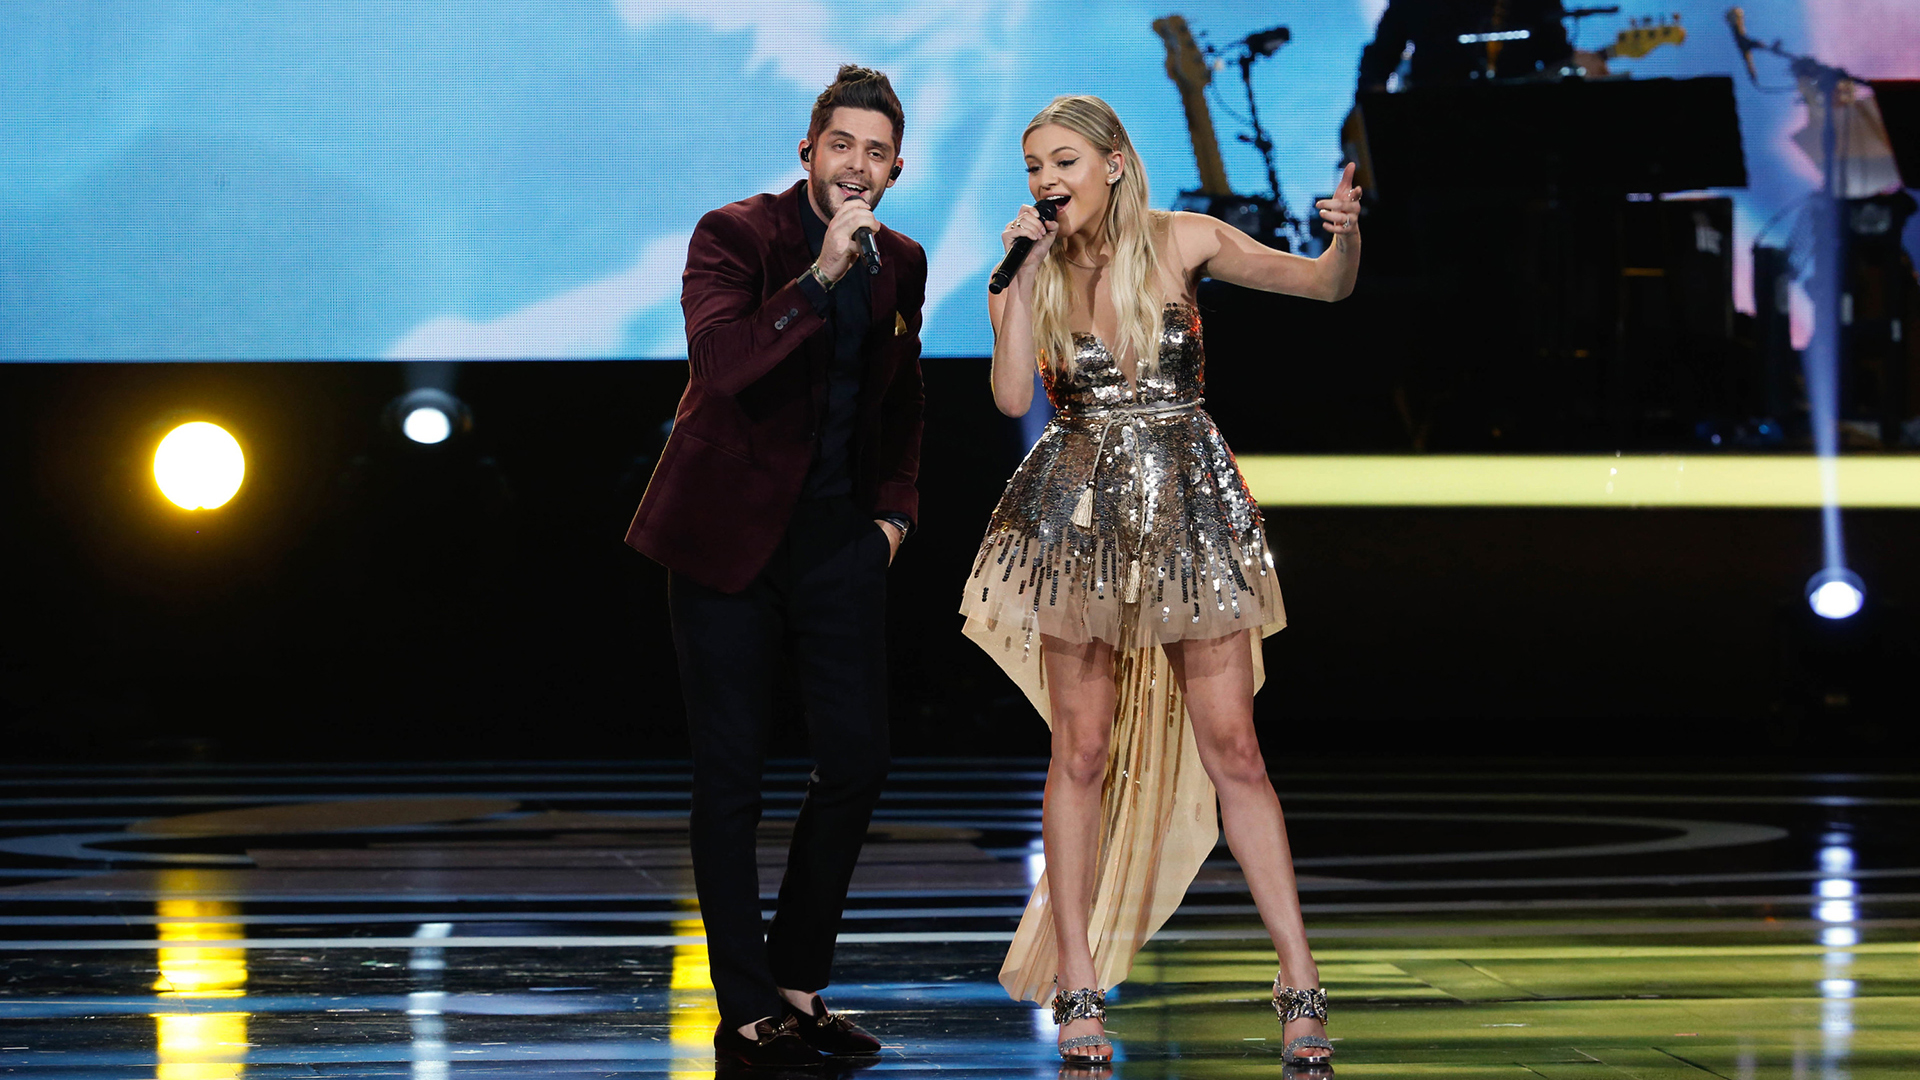 Thomas Rhett and Kelsea Ballerini perform